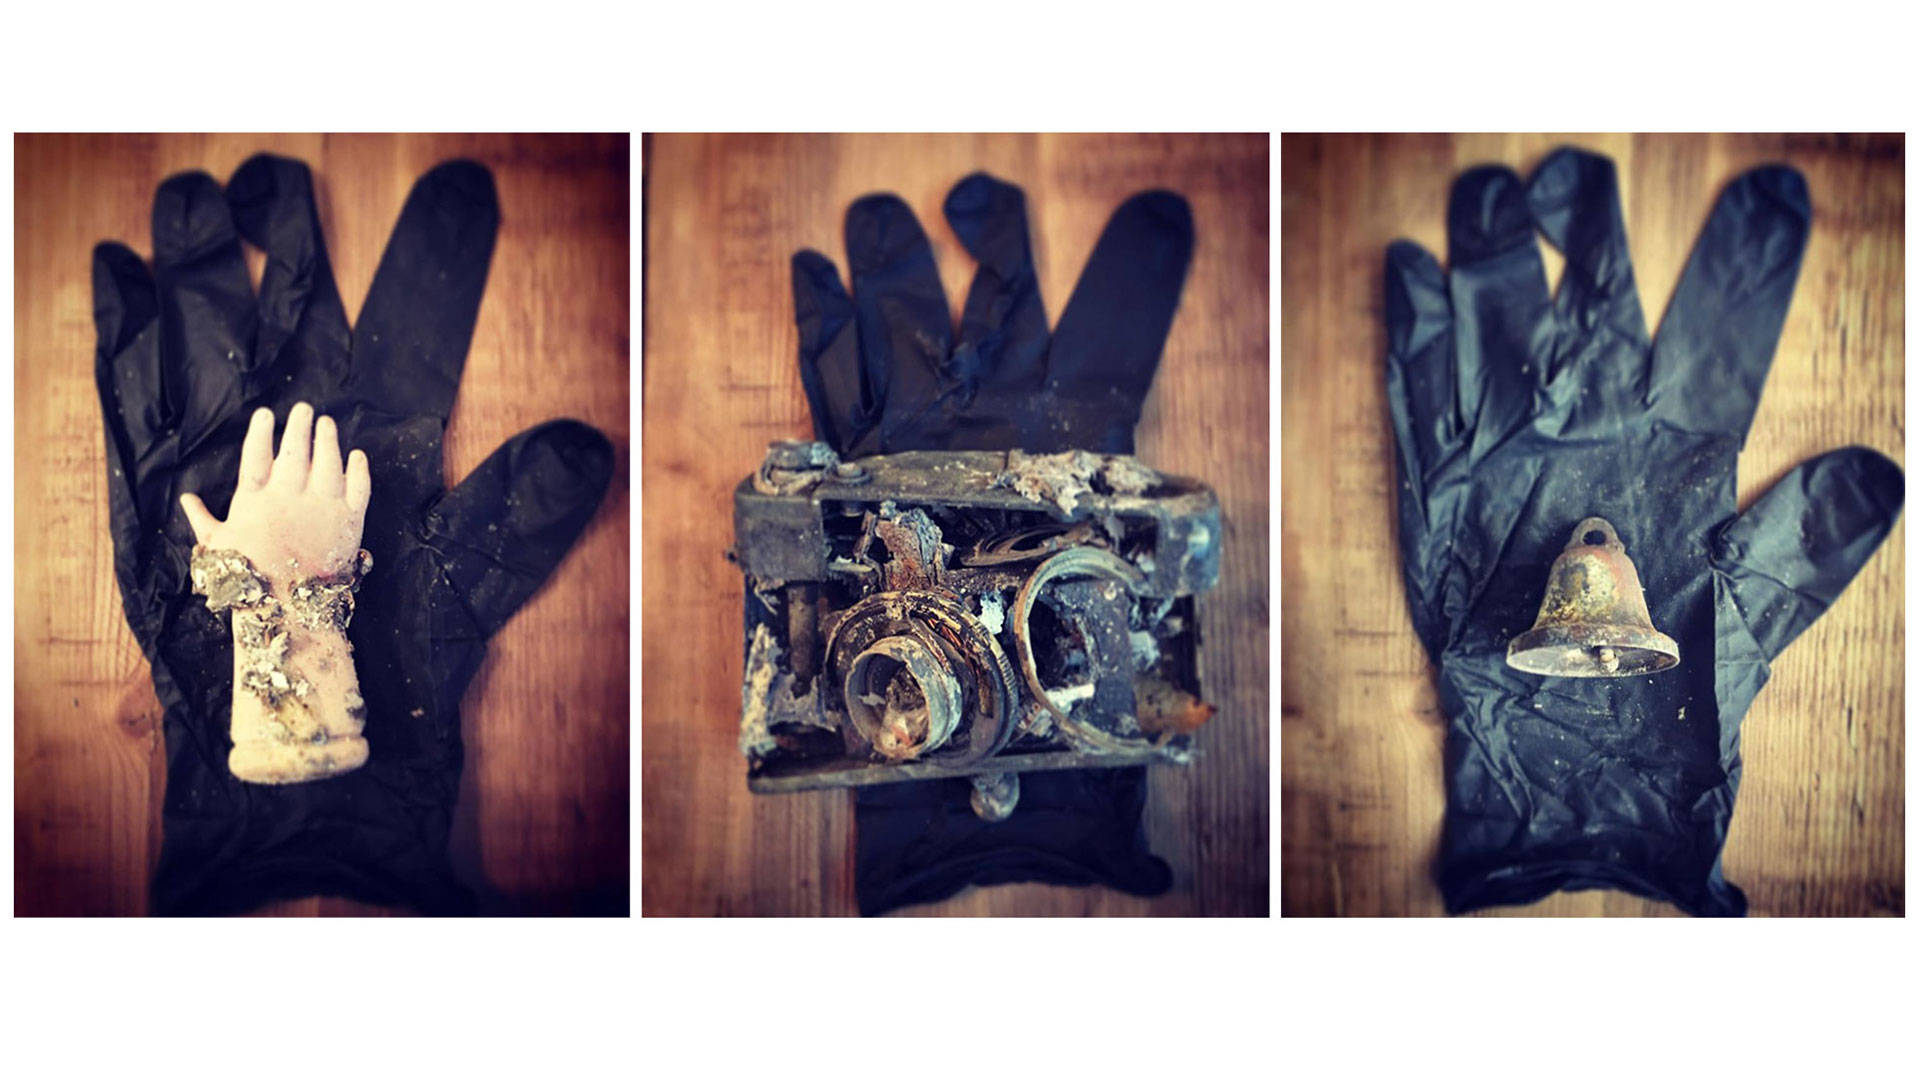 Selections from 'Forage From Fire,' a photo series by Norma Quintana of items found in the ashes of her home in Napa after the October fires. Norma Quintana